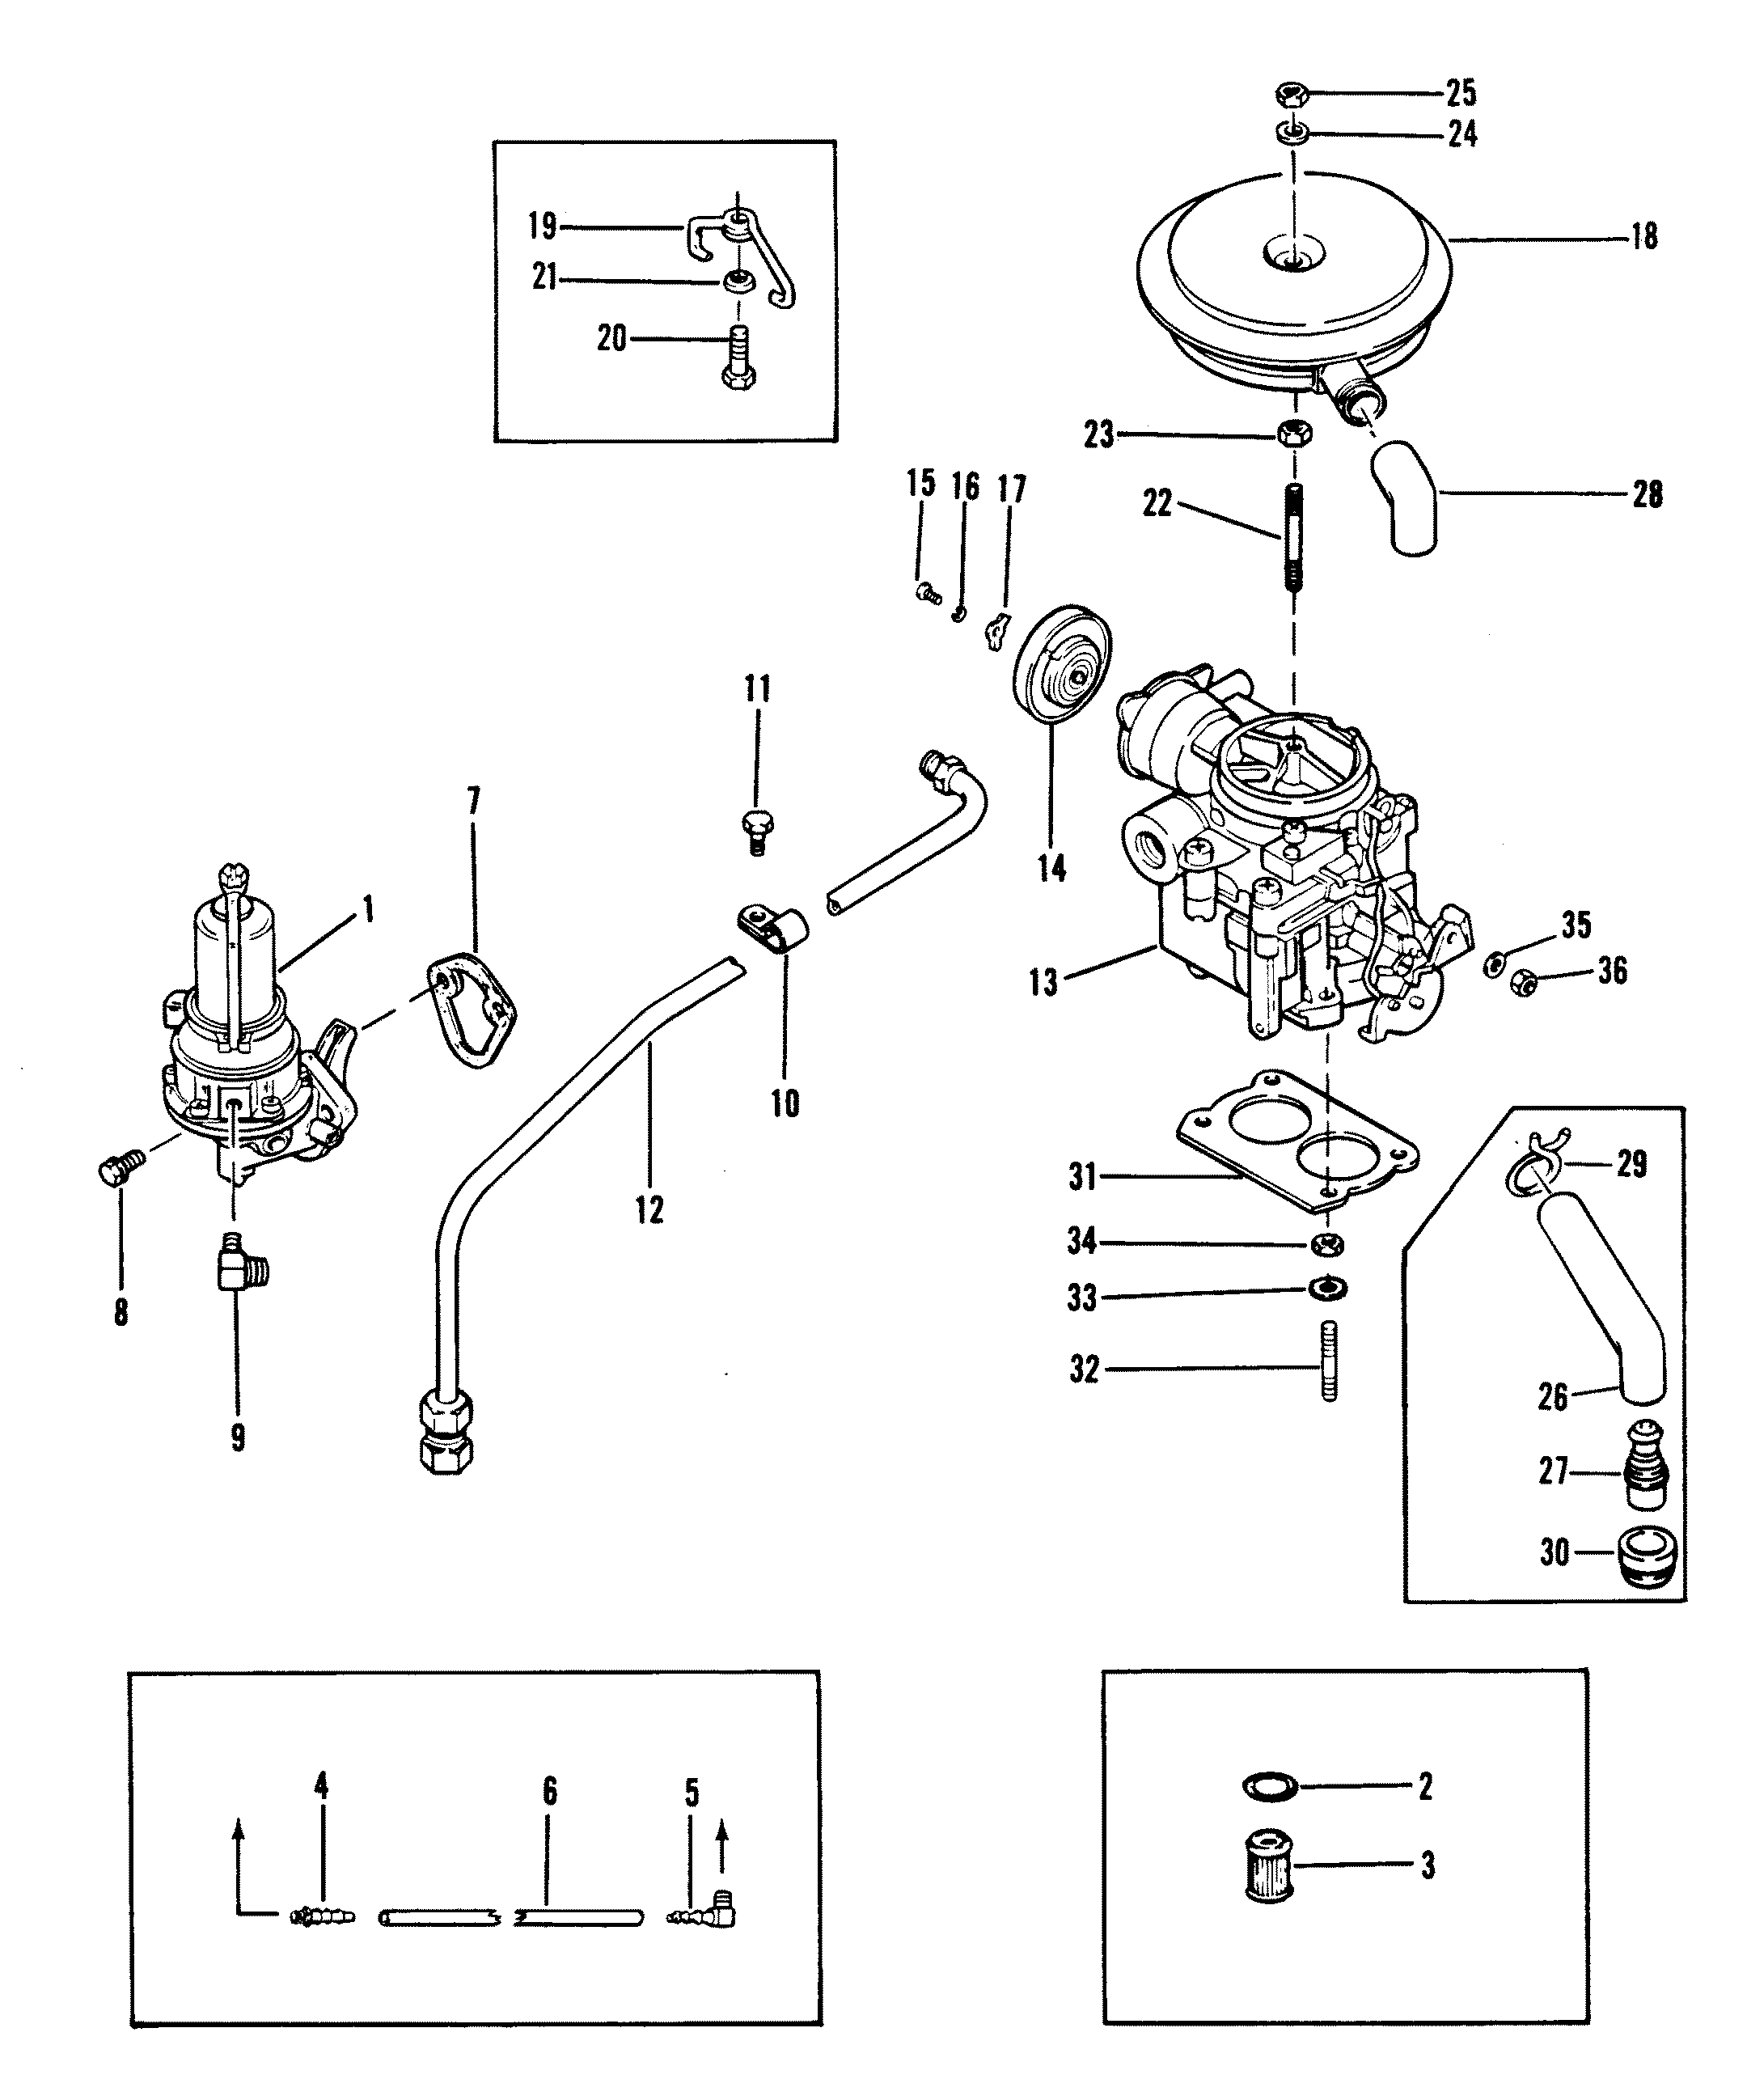 electric fuel pump wiring diagram with Show Product on Discussion T42311 ds610988 likewise Onan together with Wiring Two Switches Diagram besides Dazon Raider Classic Wiring Diagram together with Chrysler Town And Country Cooling System Schematics.